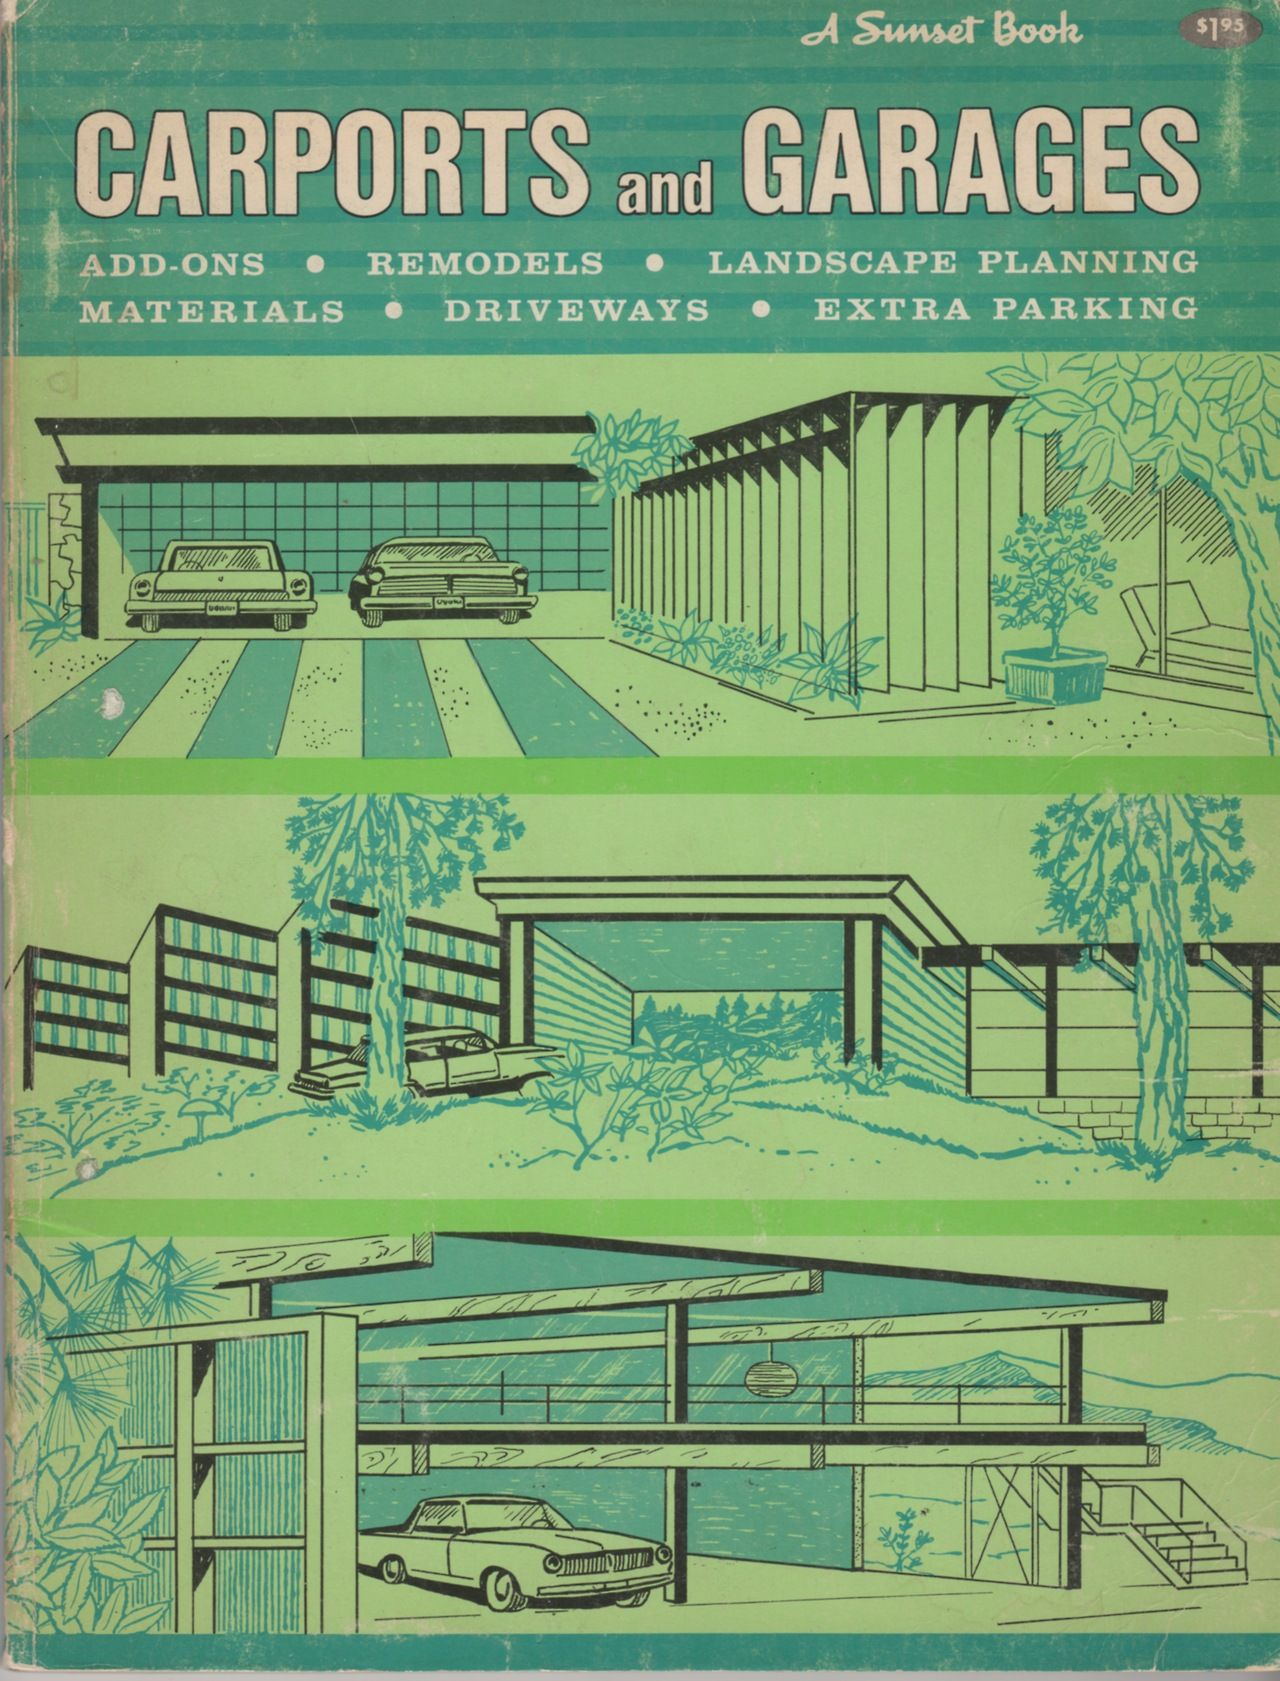 Carports and Garages (A Sunset Book). Lane, 1964 ...